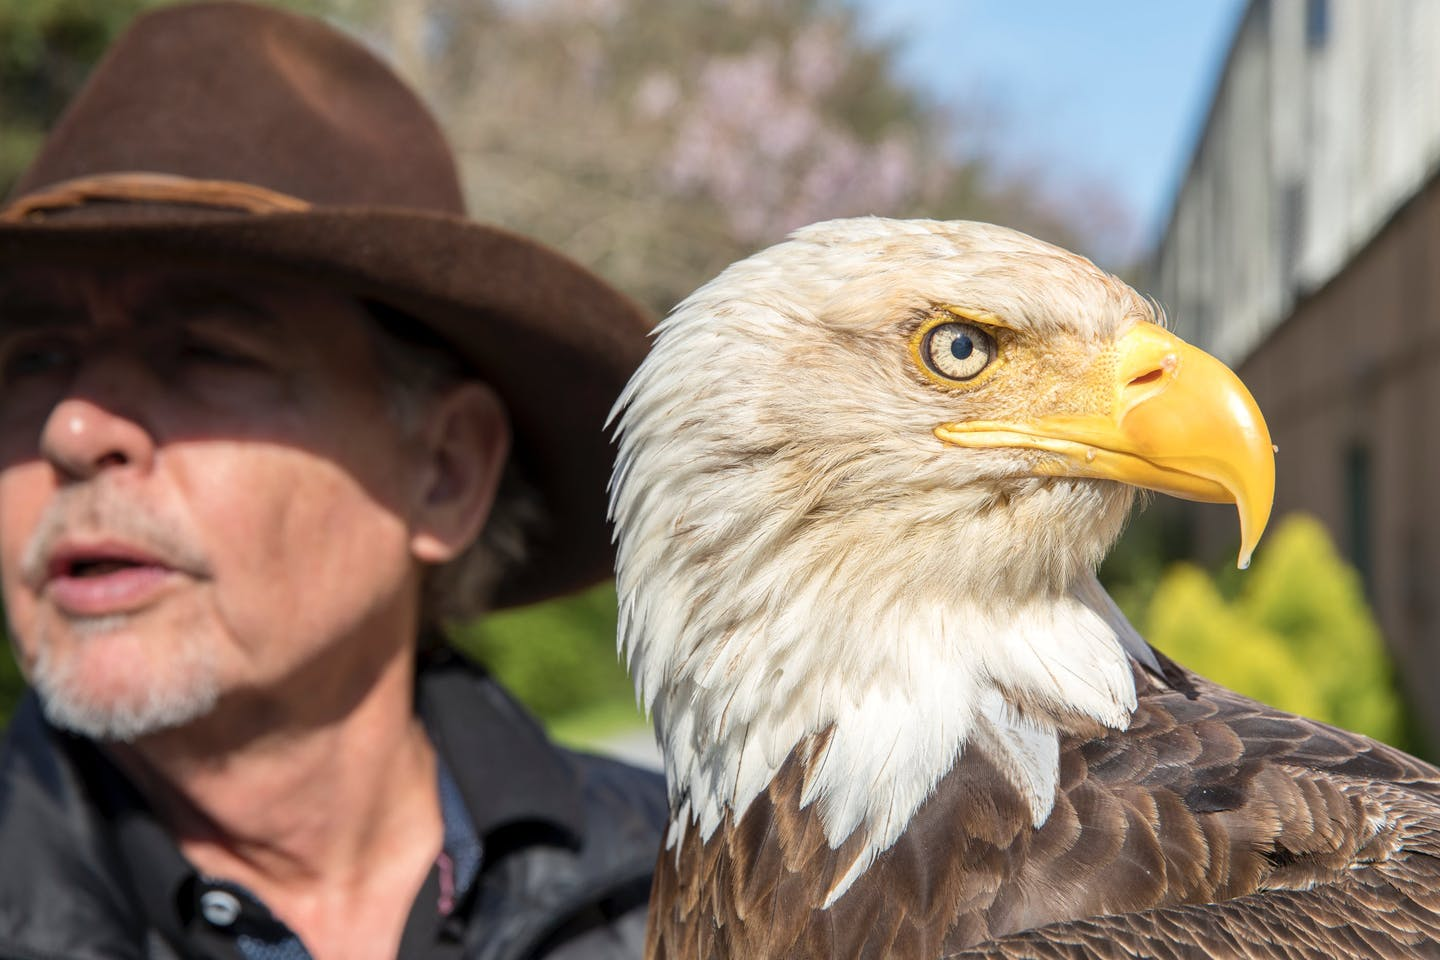 Bald Eagles in Captivity: Challenger the Bald Eagle | Topic